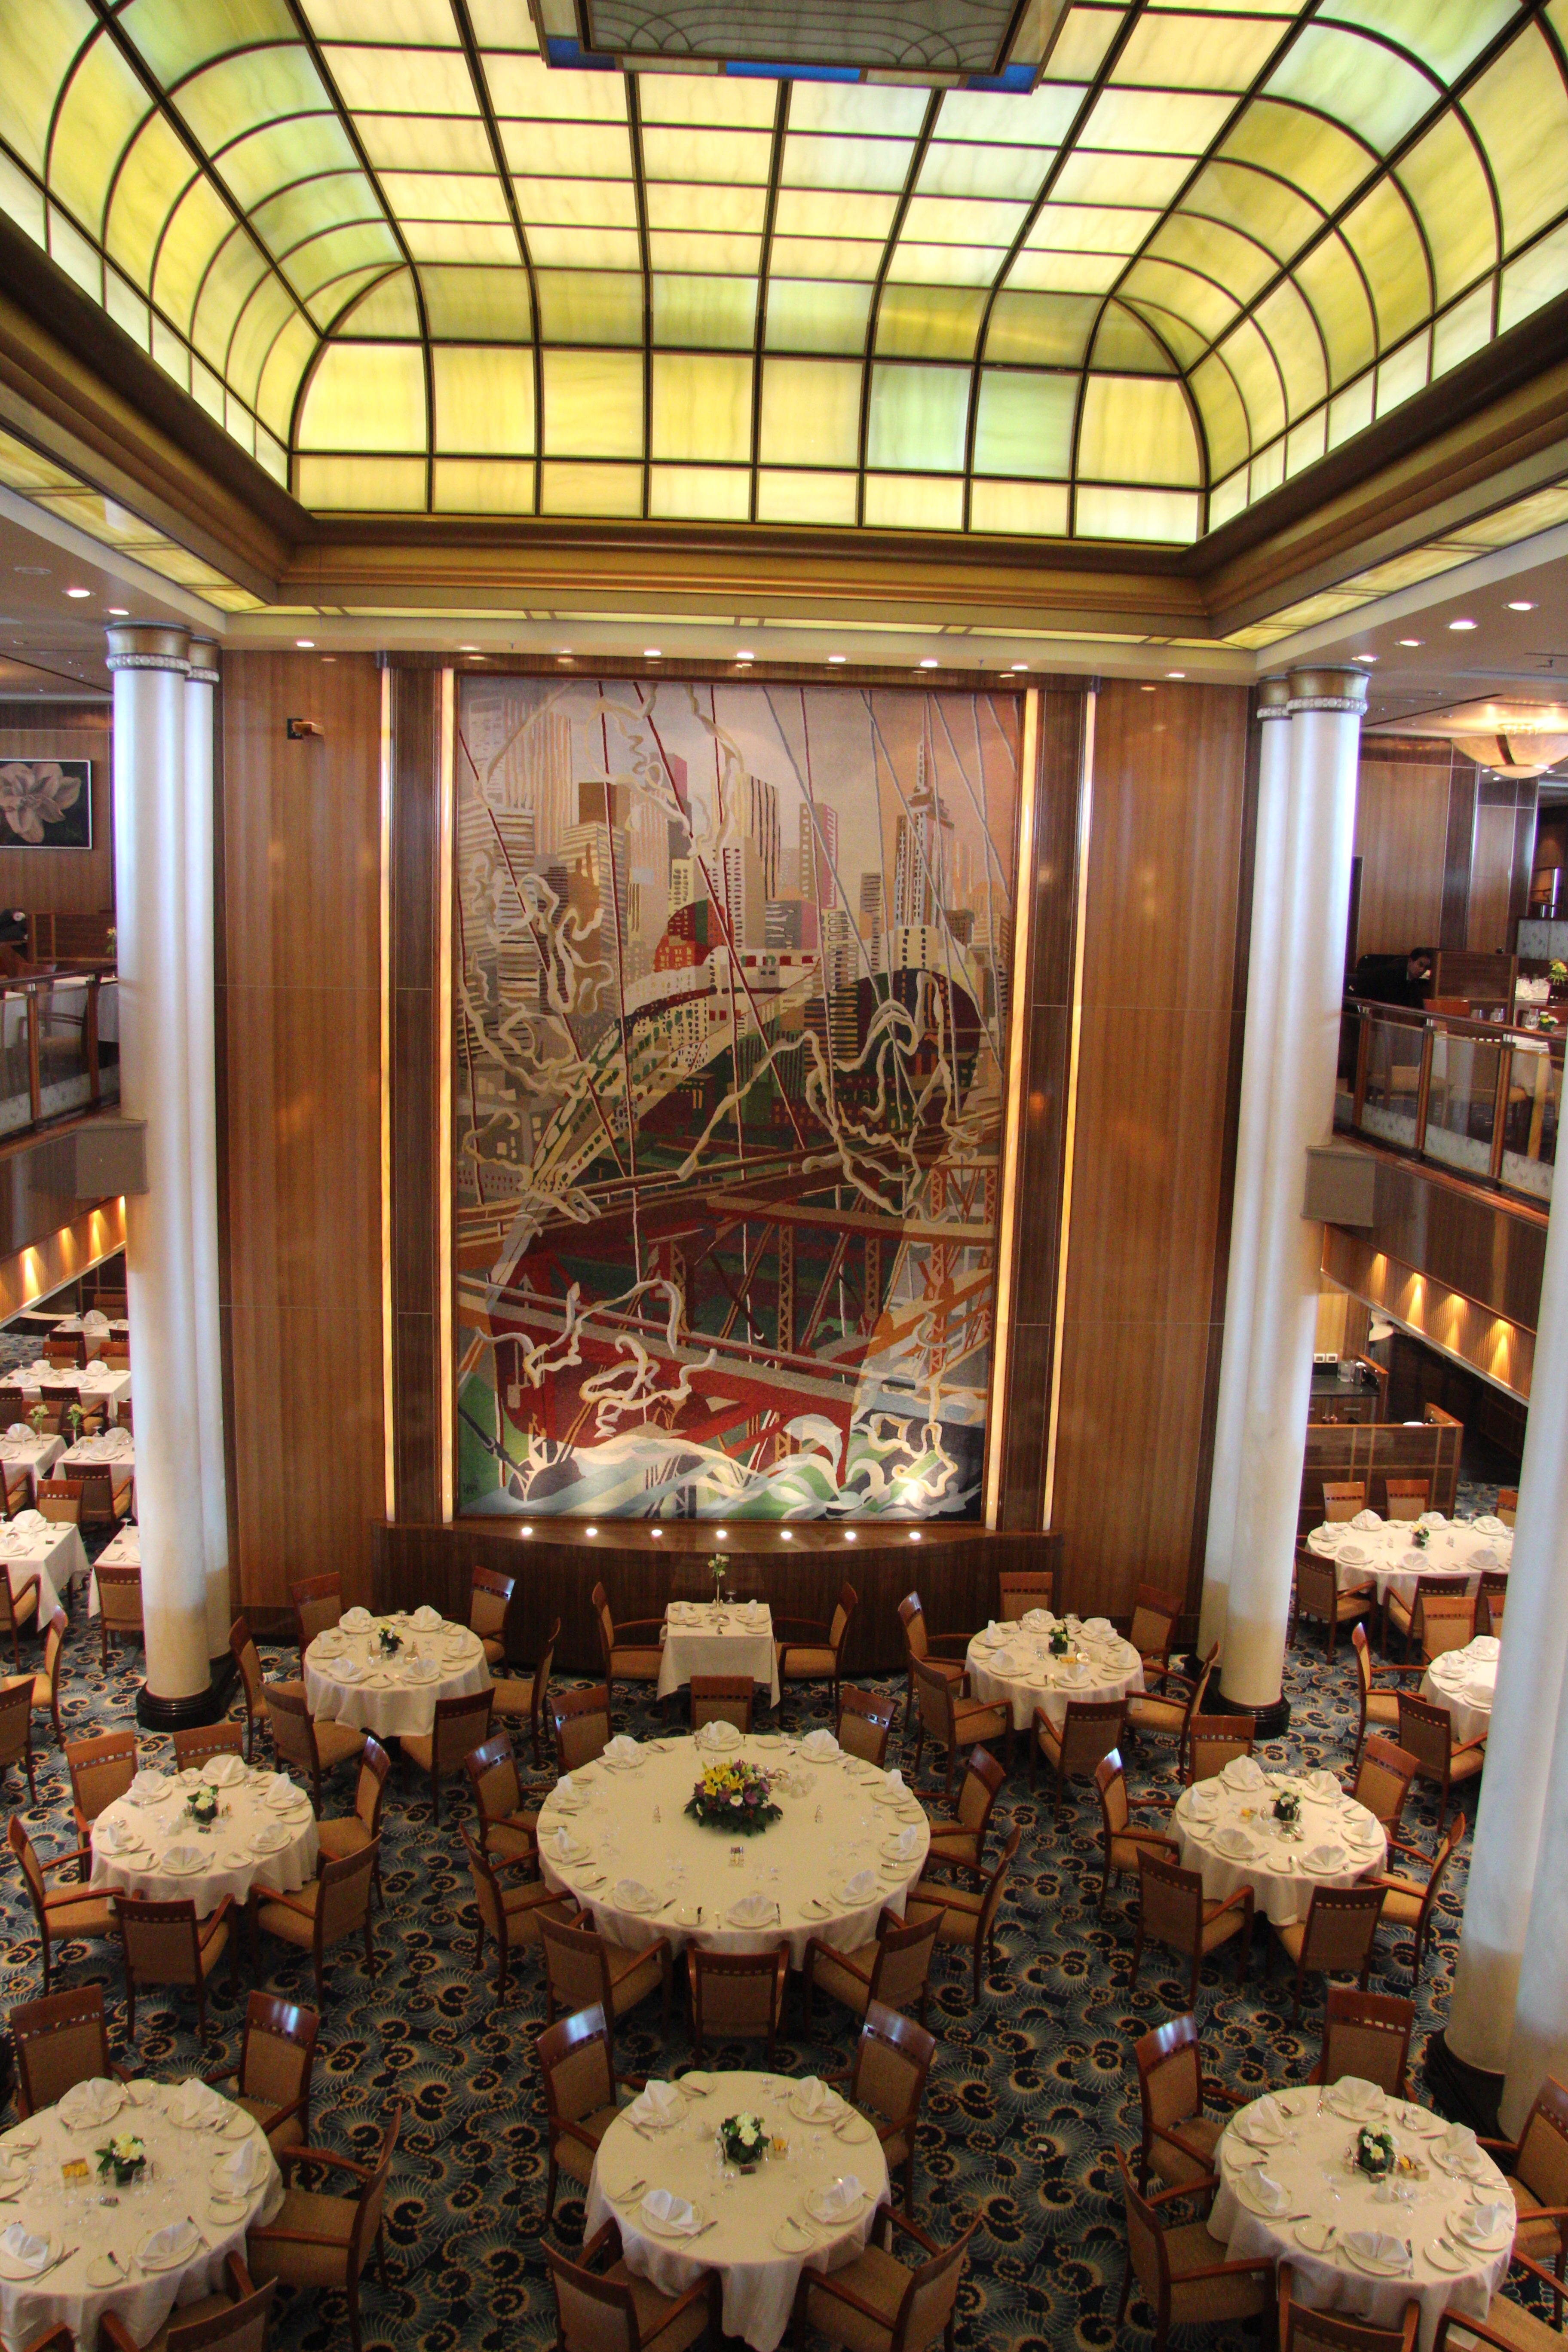 New York Mit Der Queen Mary 2, Queen Mary 2 Dining Room